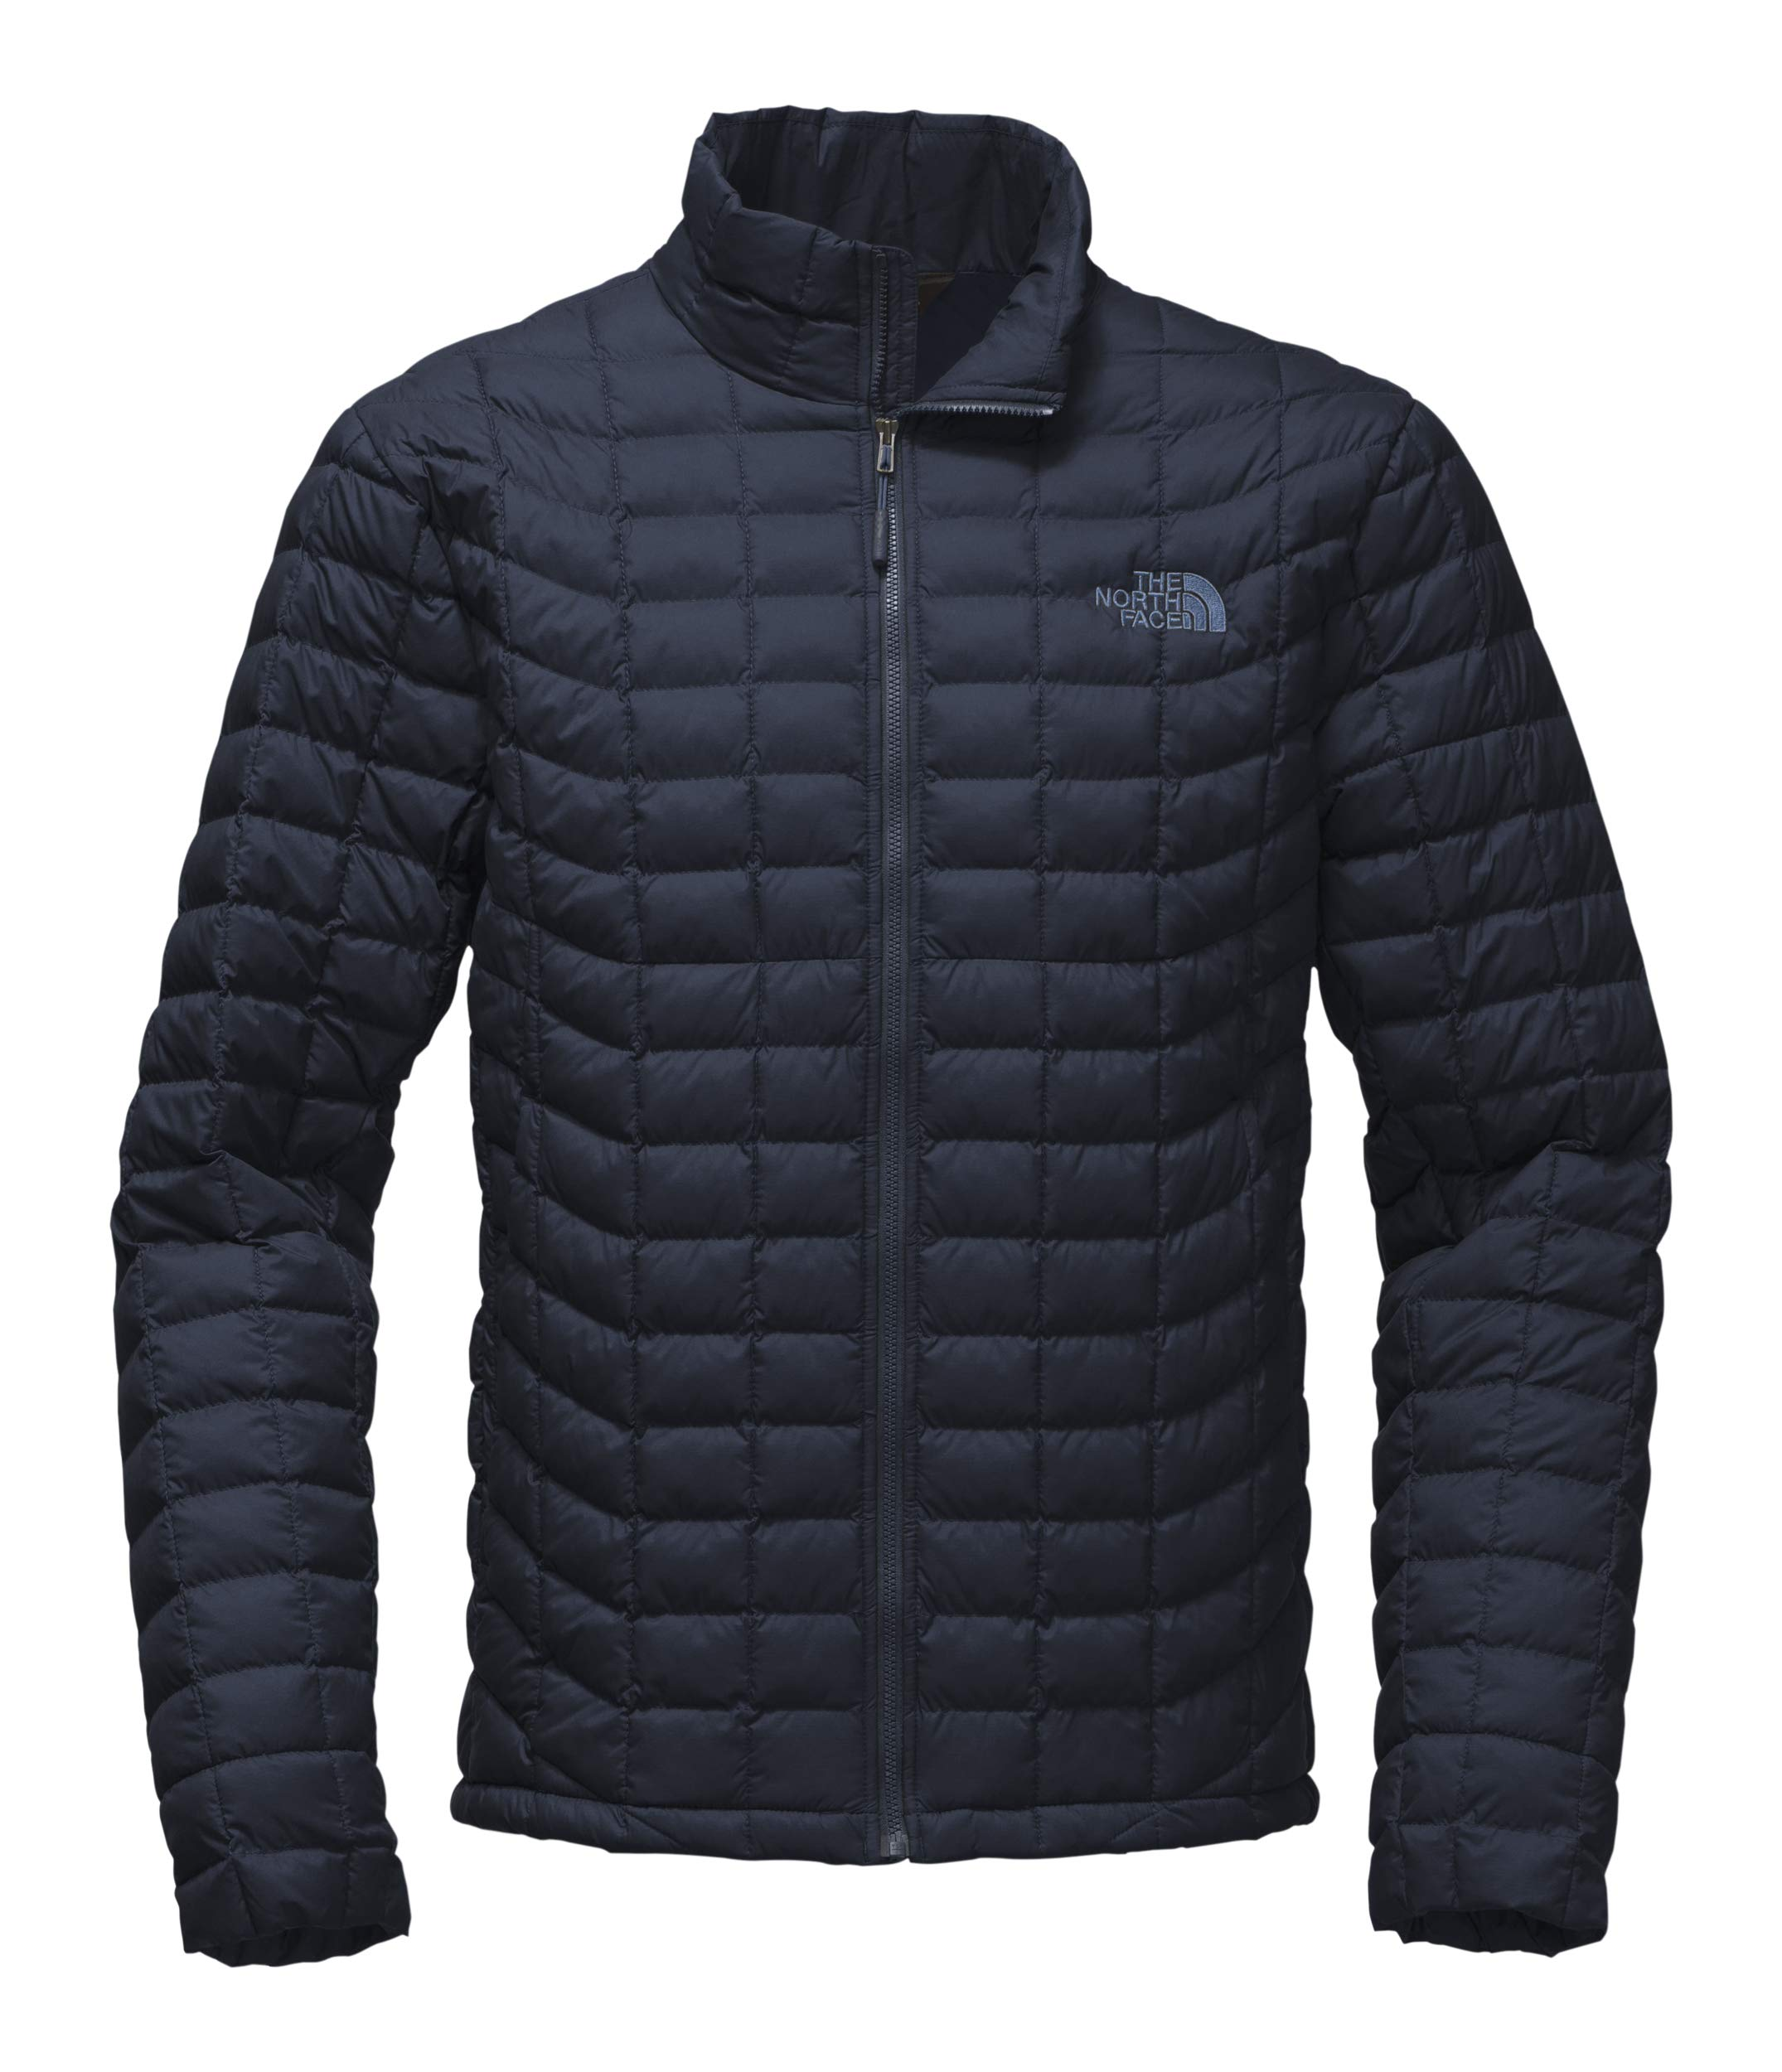 The North Face Men's Thermoball Jacket Tall - TNF Black Matte - XL by The North Face